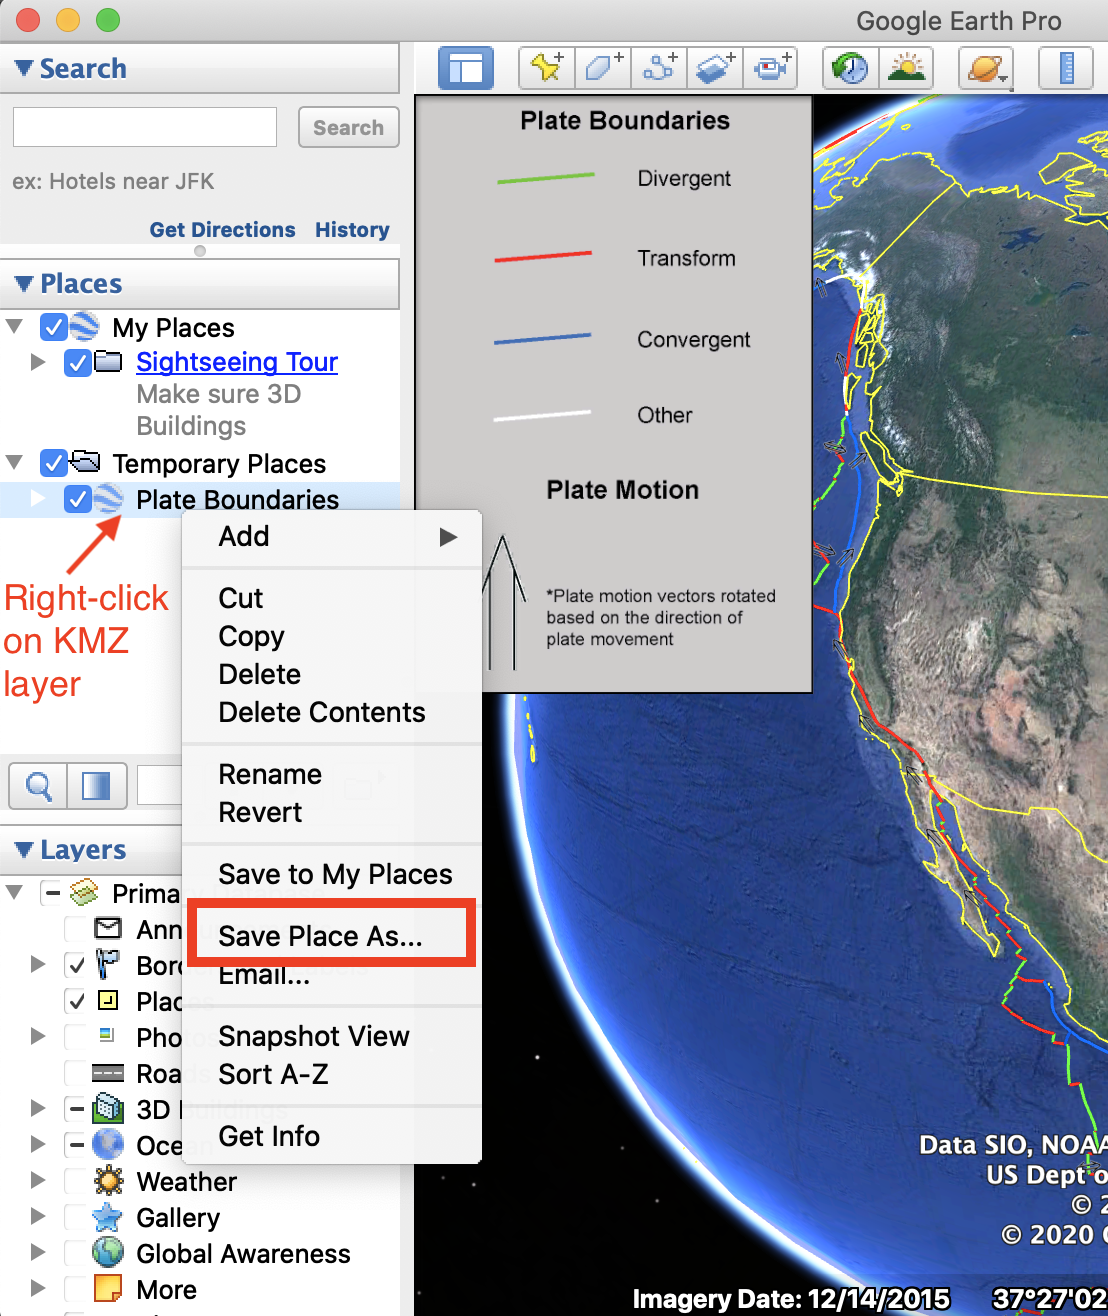 In Google Earth Pro, right-click the KMZ layer and choose Save Place As.